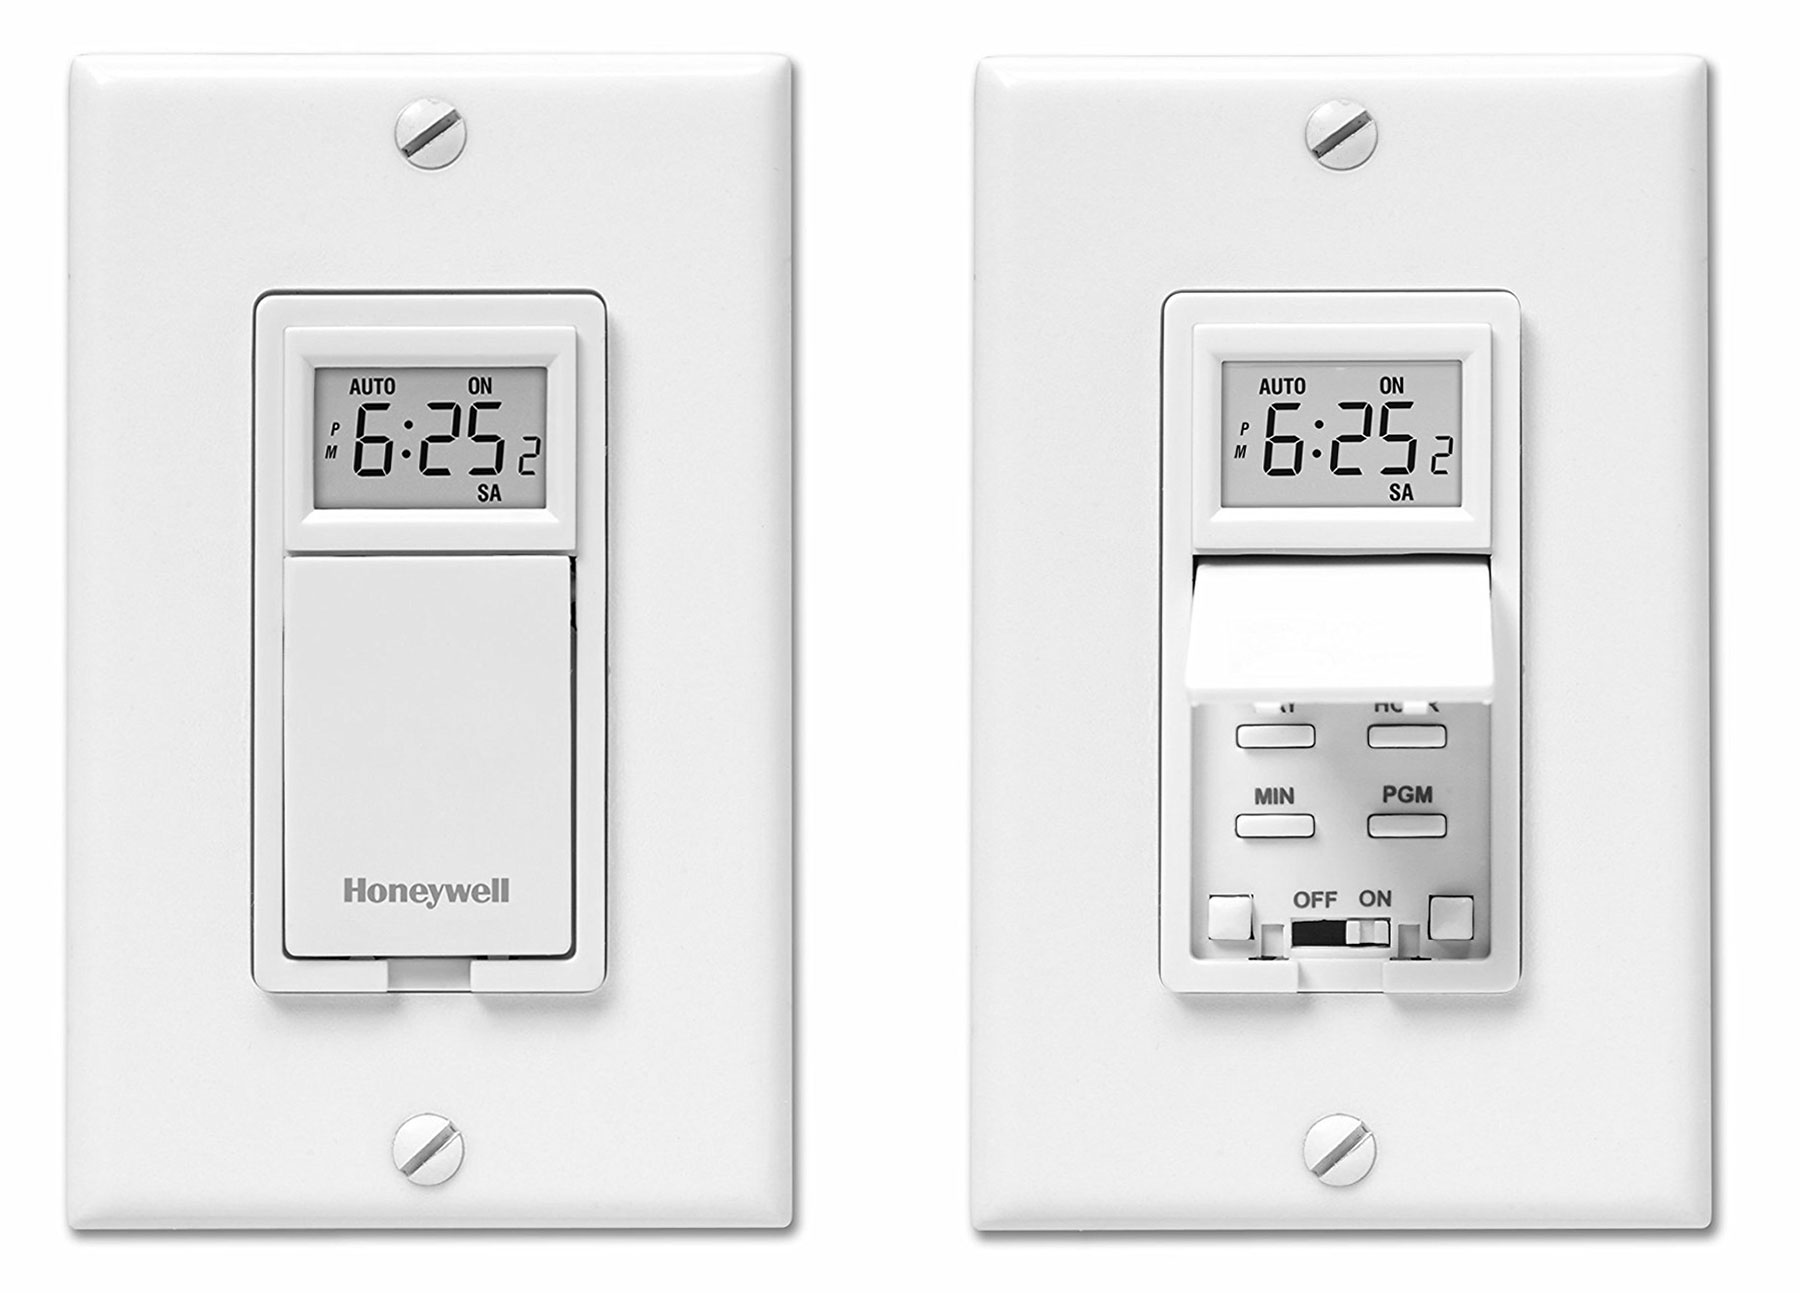 Should You Install A Wall Timer Light Switch In Your Home Warisan How Does Work Can For Instance Set The To Only At Night Effect Save On Electricity Bills More So When Youre Not